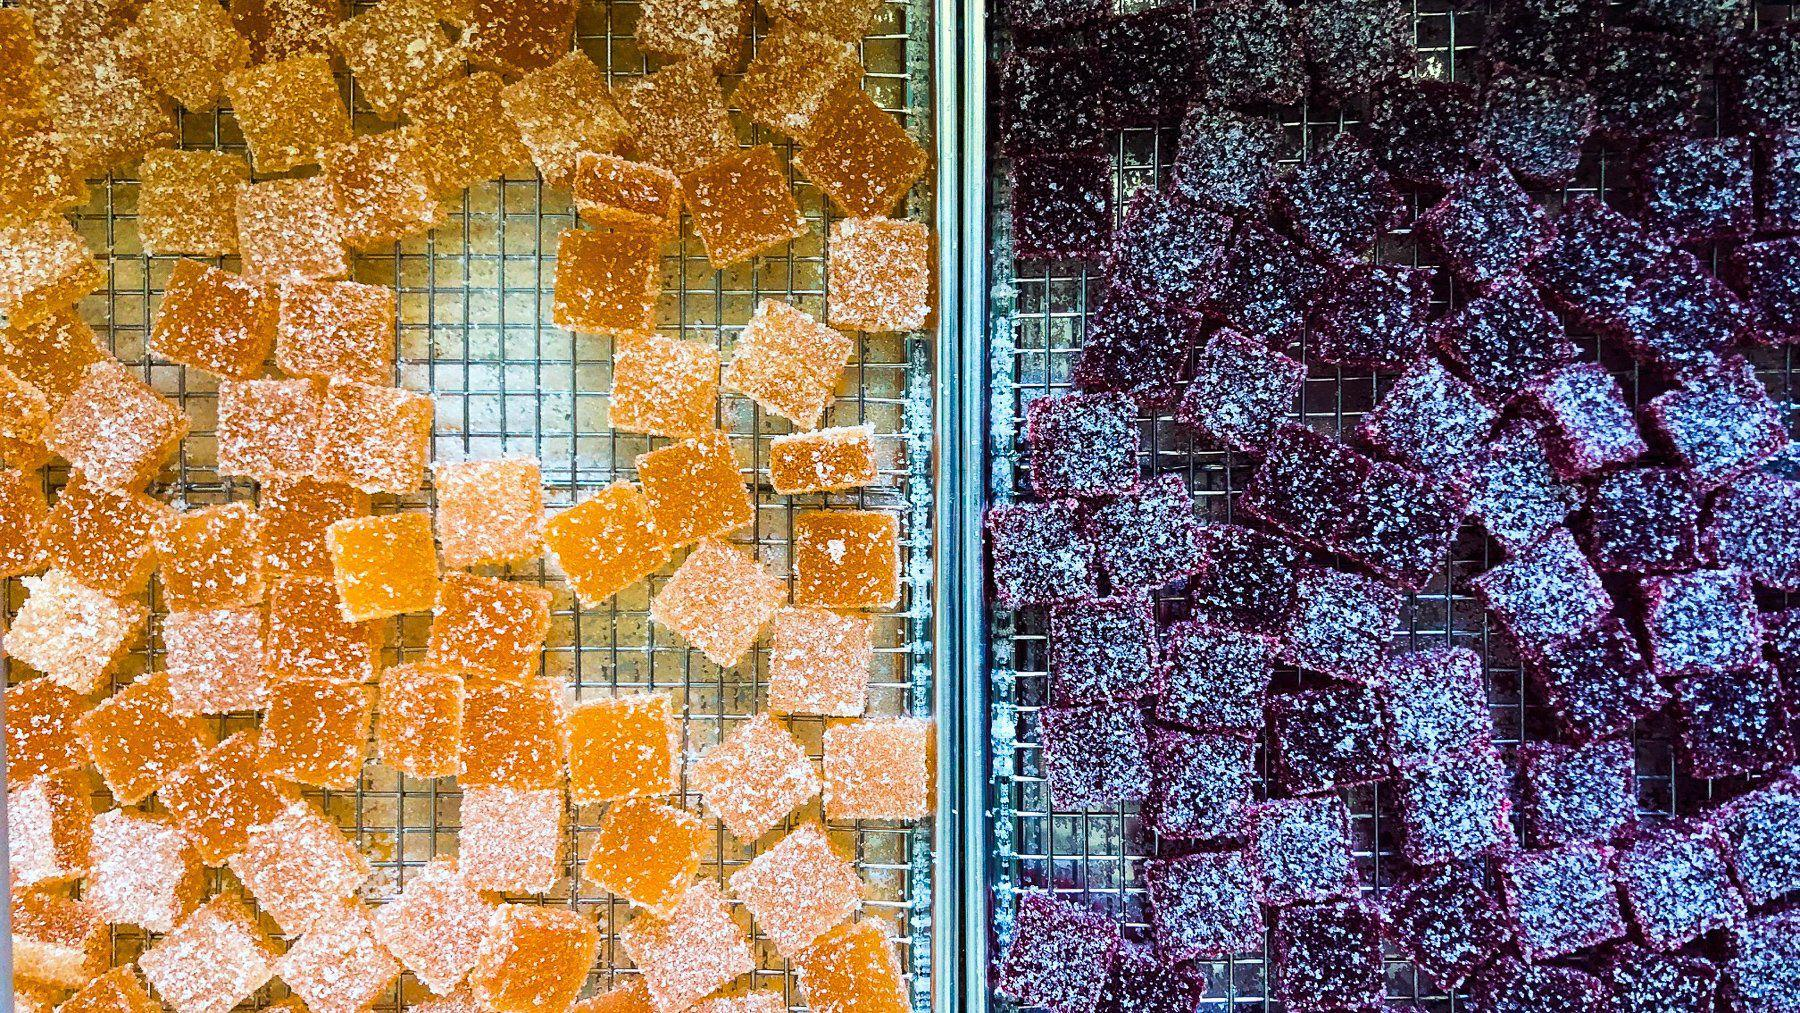 Modern Candy Company puts CBD in sweets